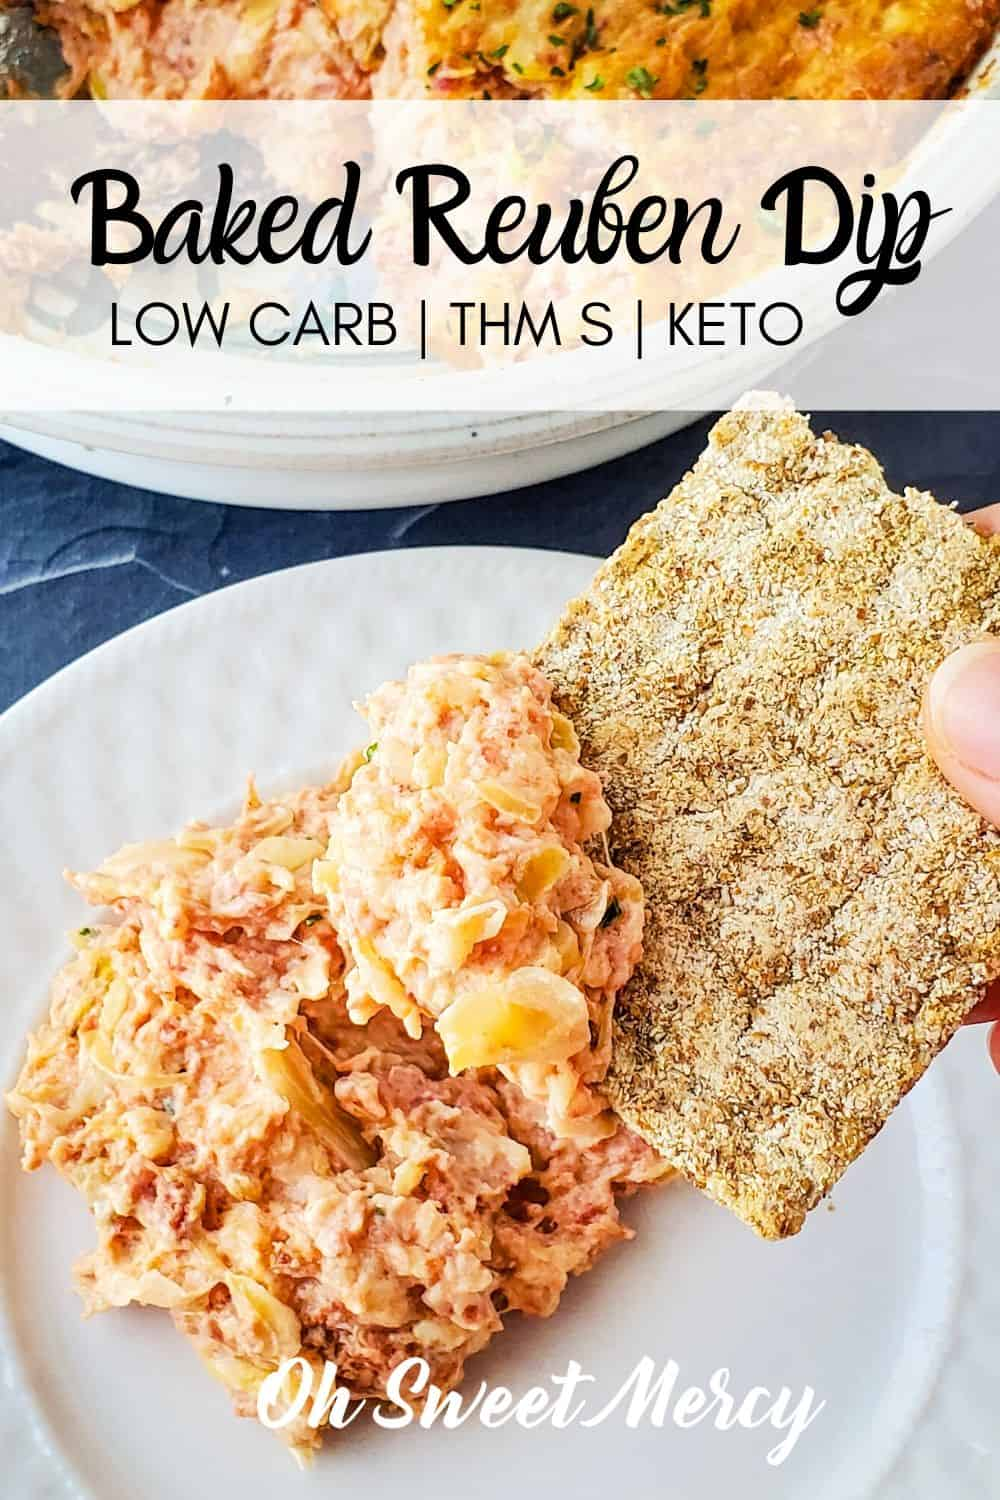 Easy, low carb baked Reuben dip is THM S and Keto friendly! Great for parties and potlucks. #lowcarb #thm #keto #reubendip